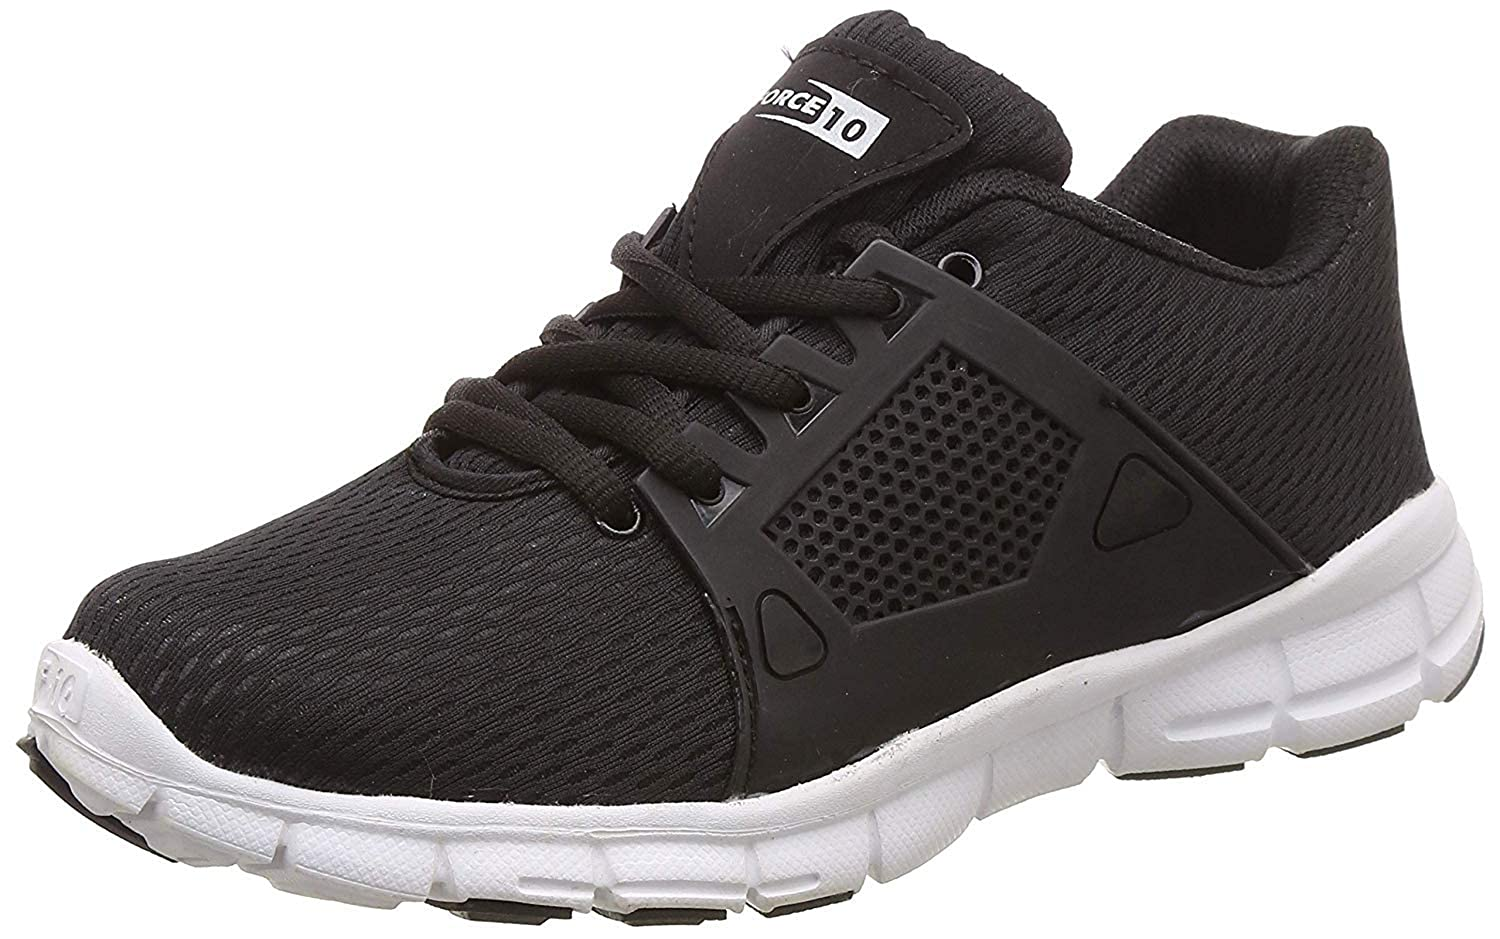 PDM-17 Black Running Shoes at Amazon